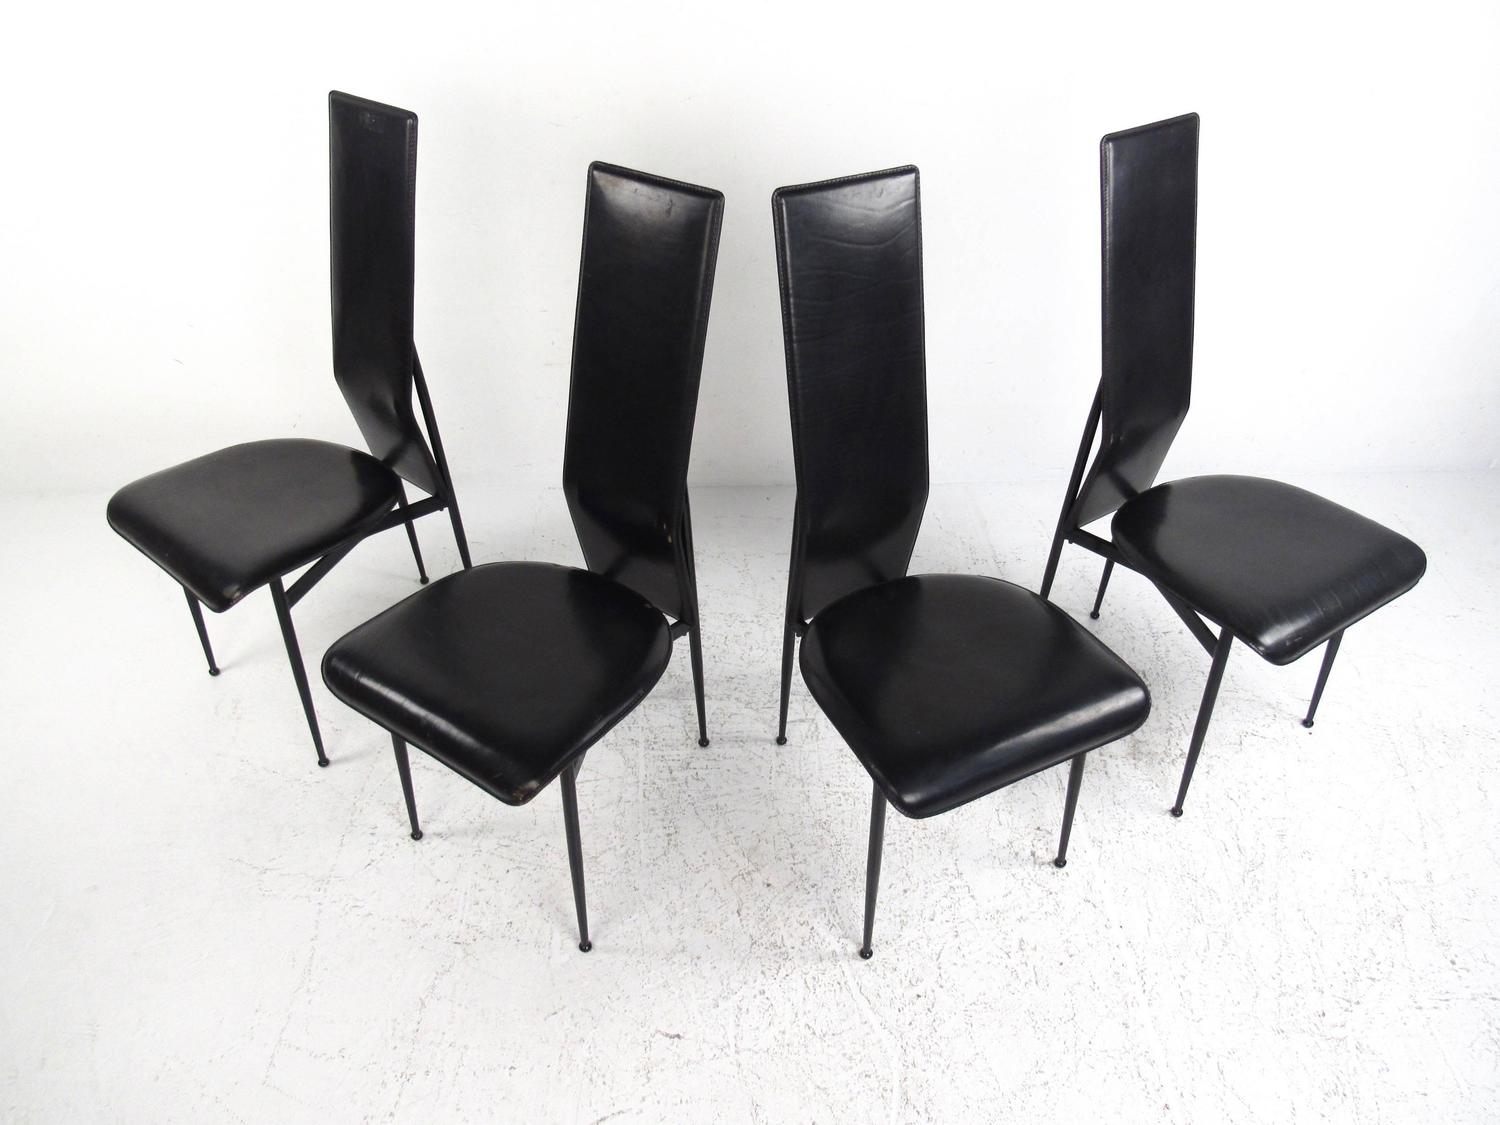 Made In Italy Leather Luxury Contemporary Furniture Set: Set Of Contemporary Modern Italian Leather Dining Chairs